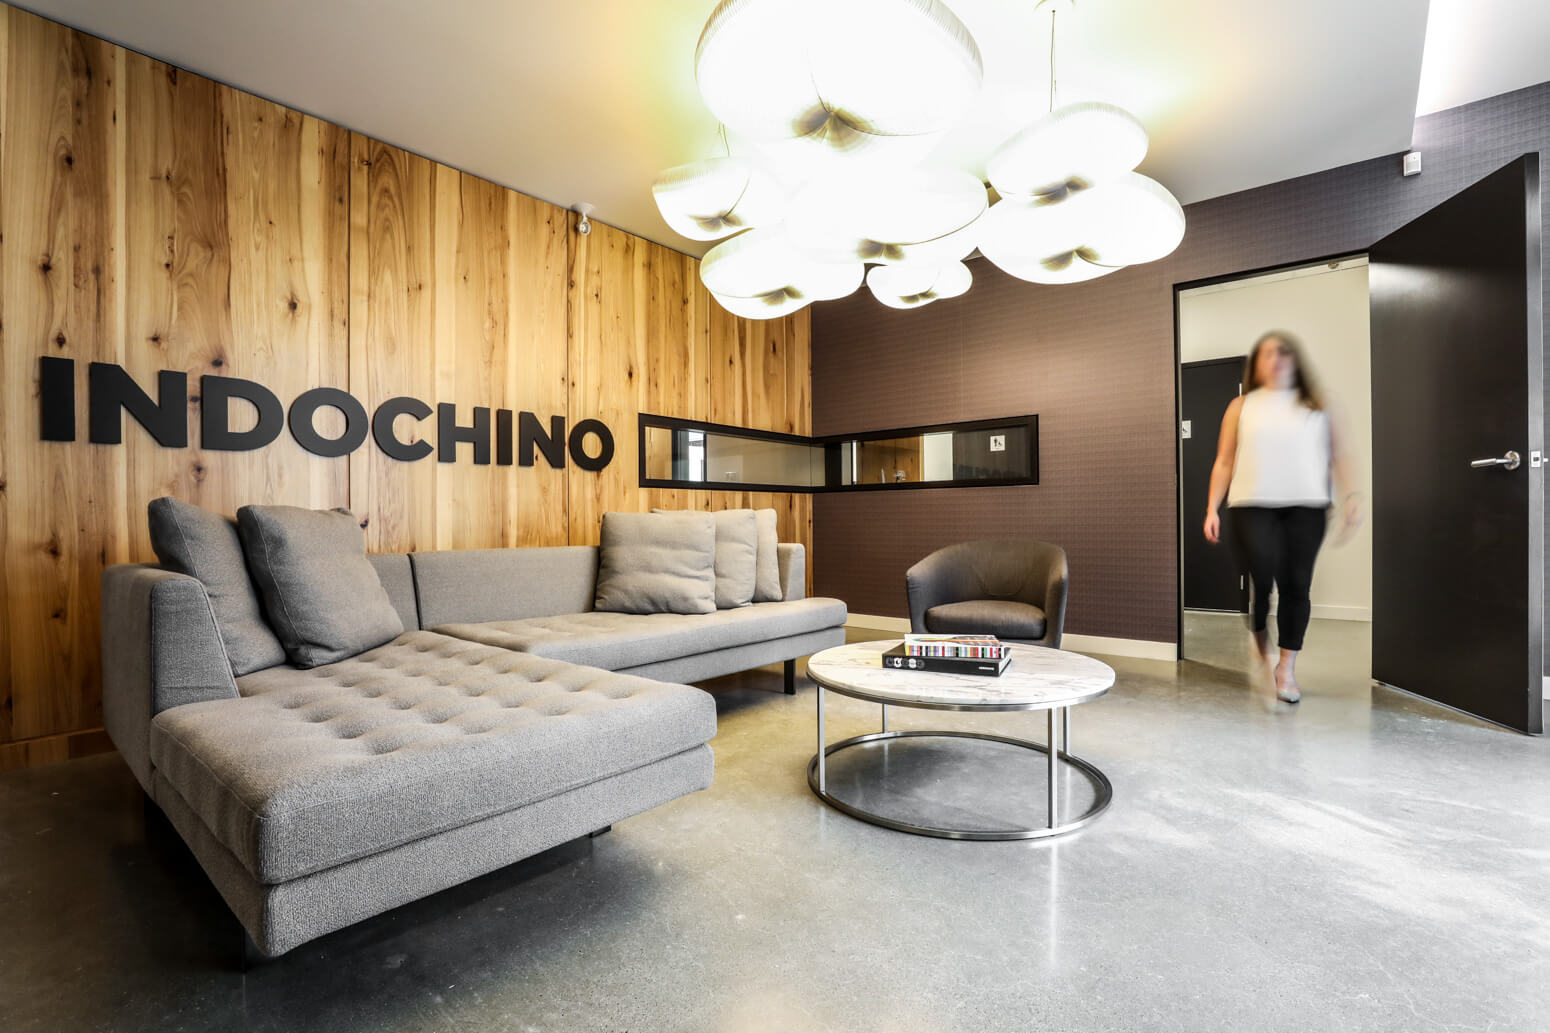 Indochino_Vancouver_Office_Killer_Spaces_Techvibes-1